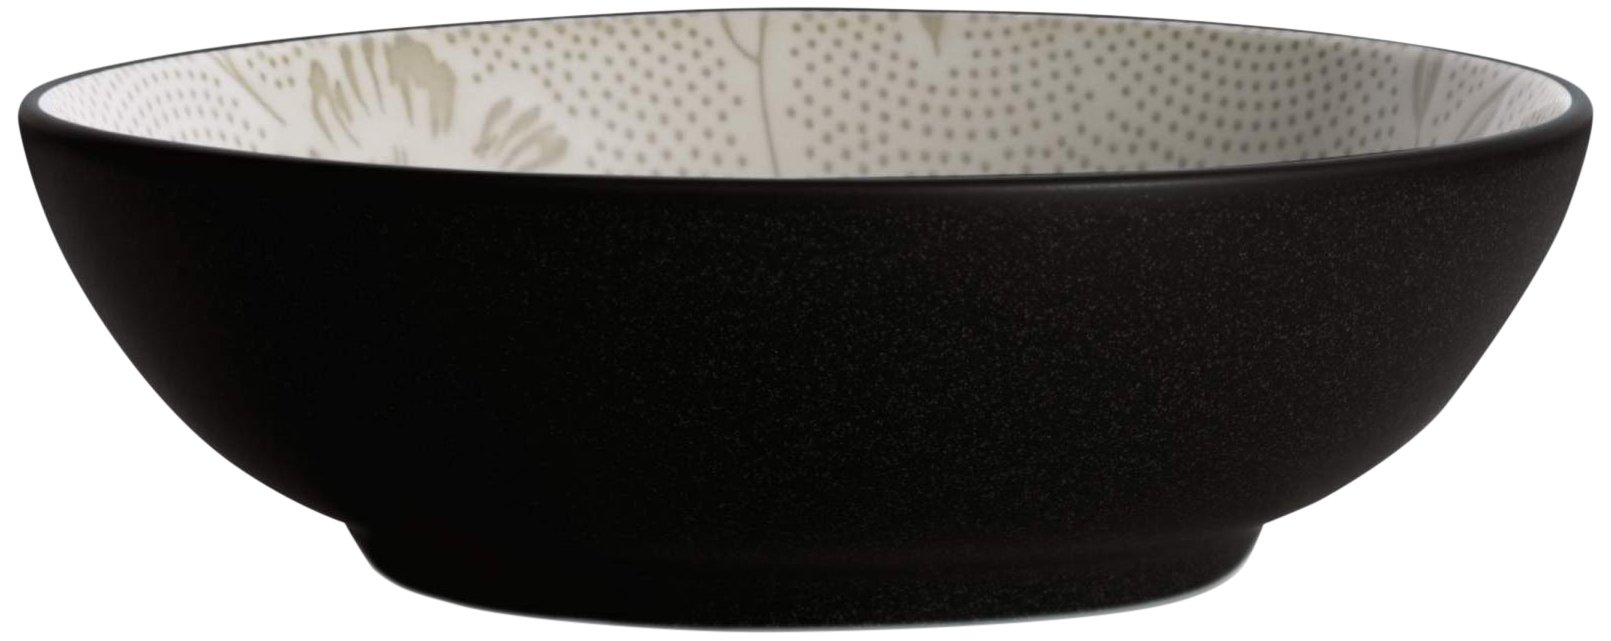 Noritake Colorwave Bloom Round Vegetable Bowl, 64-Ounce, Graphite